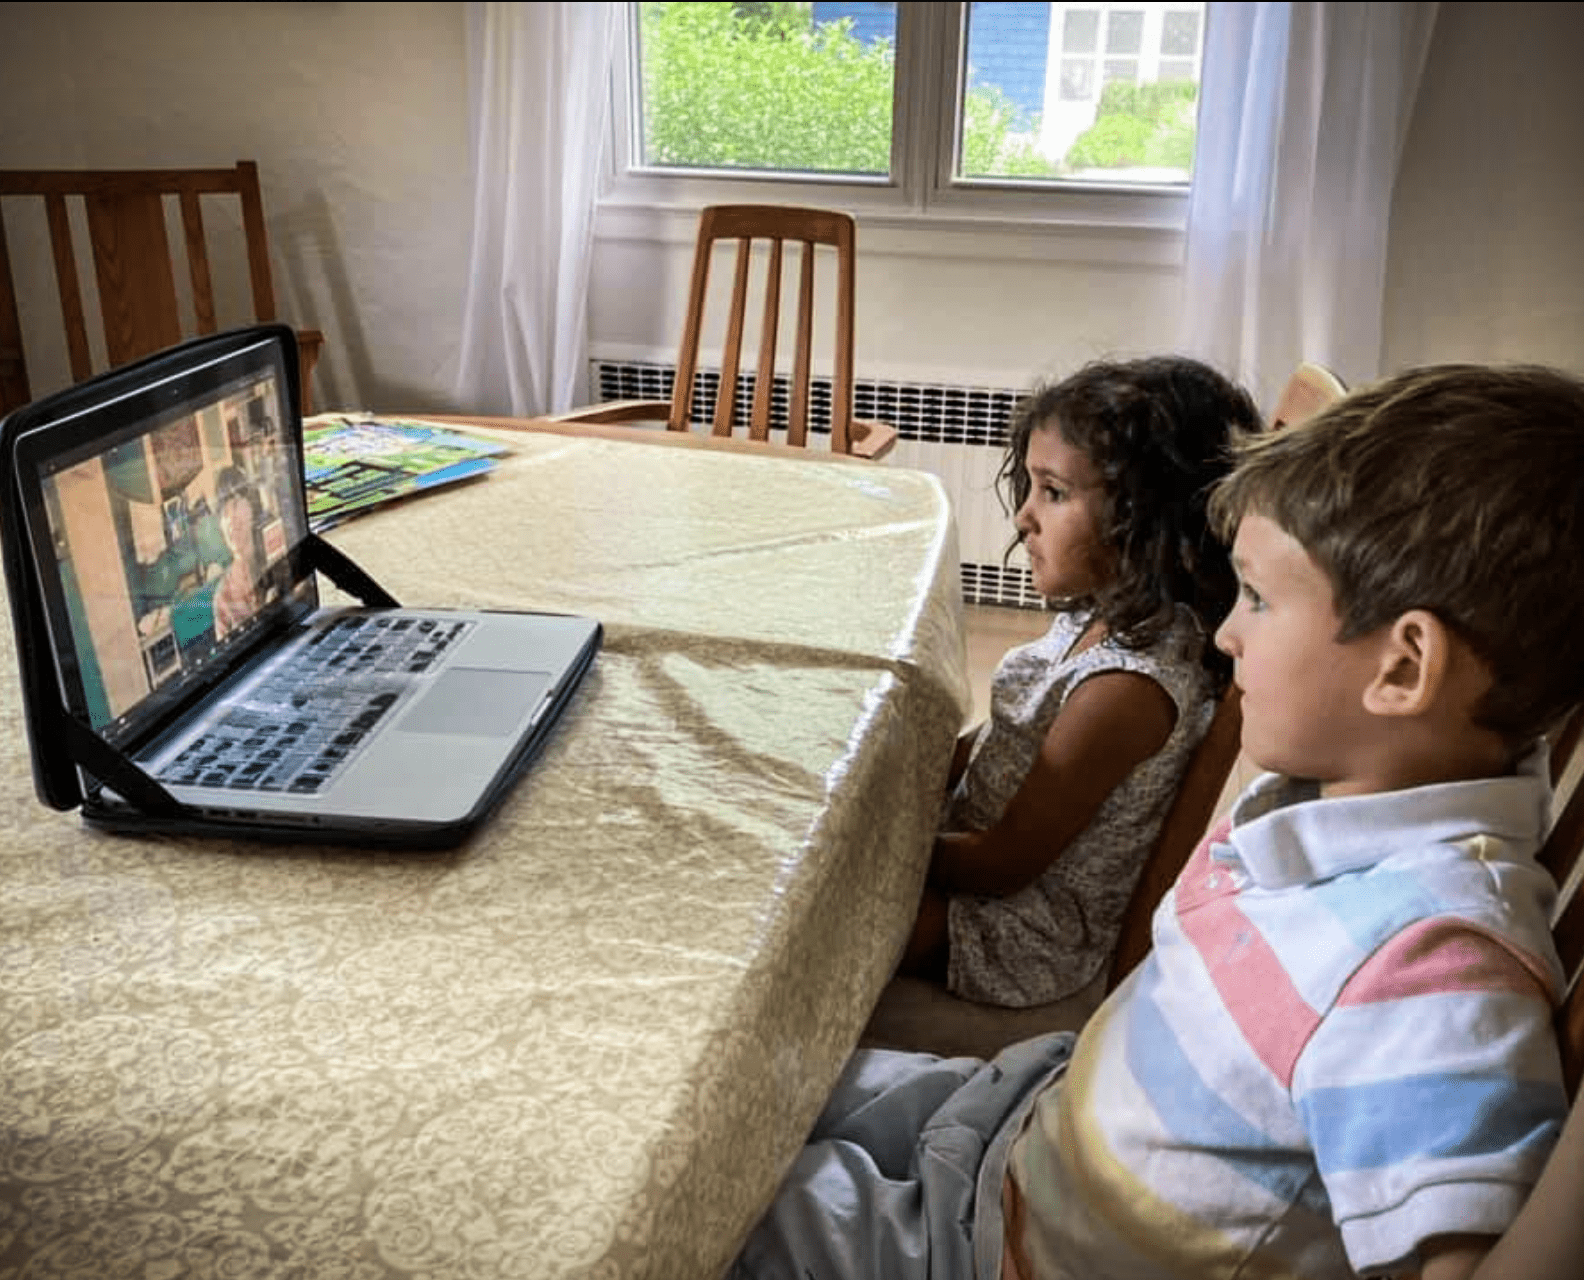 Two young children sit at a dining room table watching a virtual lecture on a laptop.